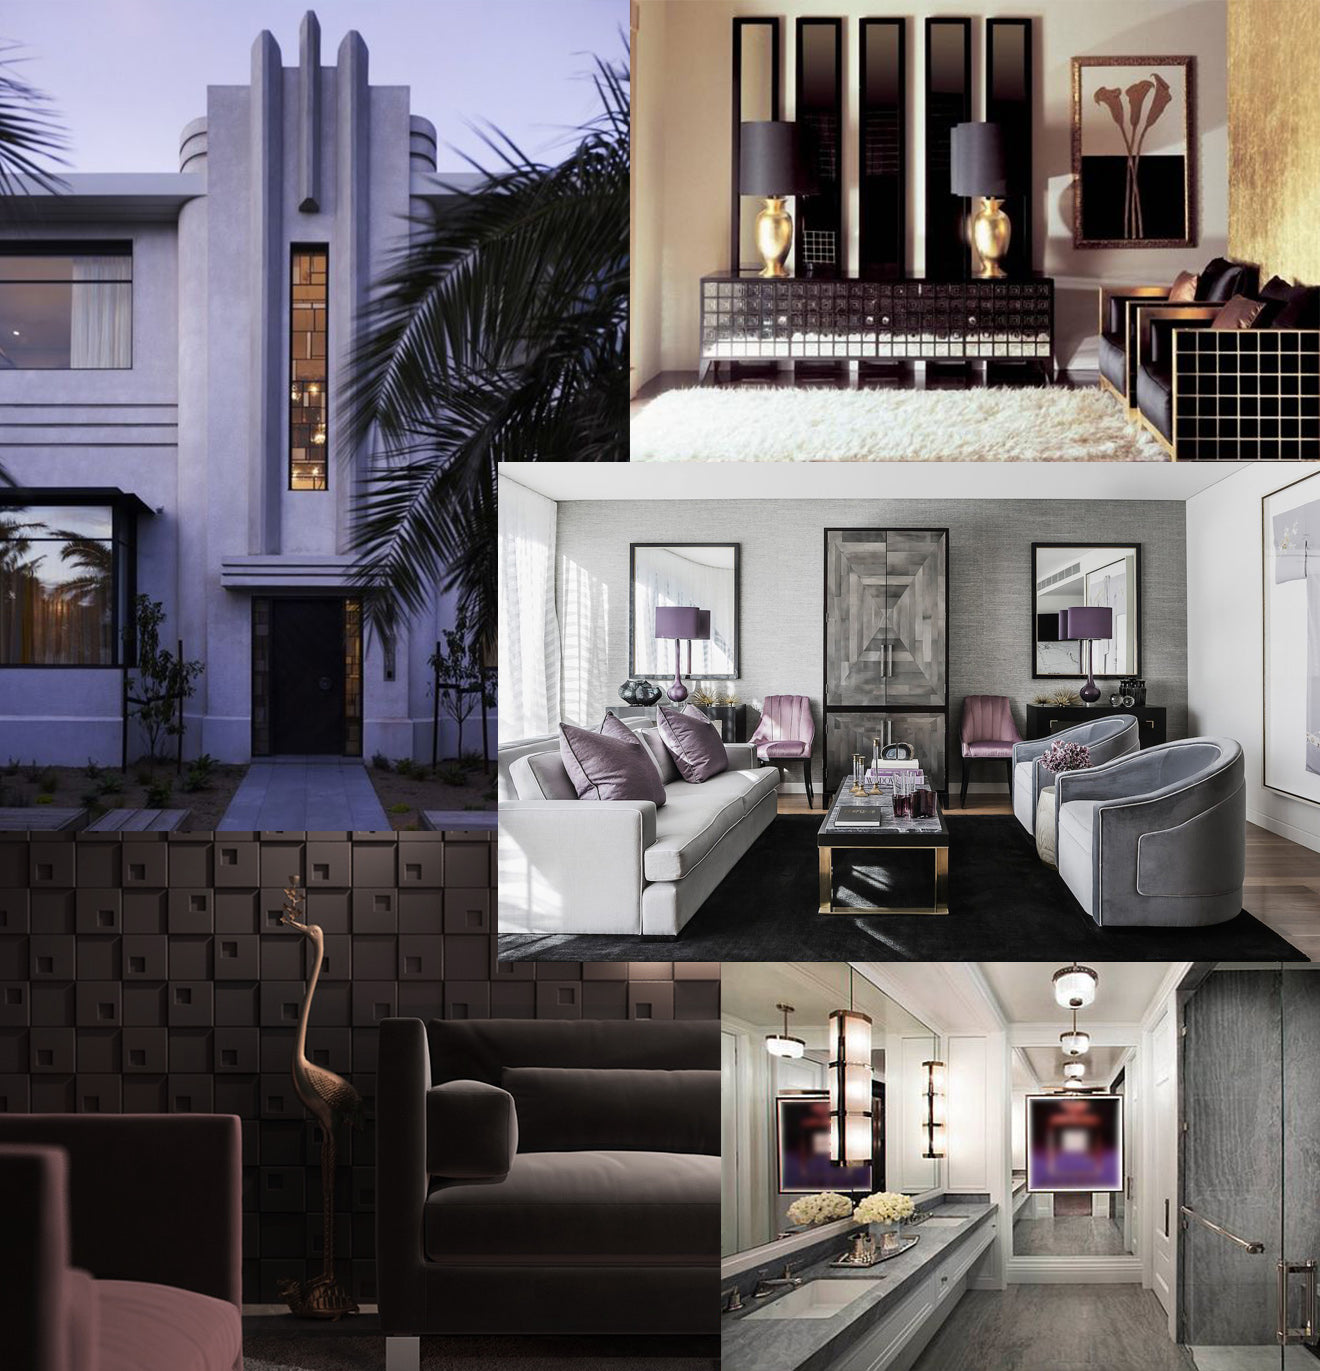 Modern Art Deco decoration style and inspiration mood board interior design